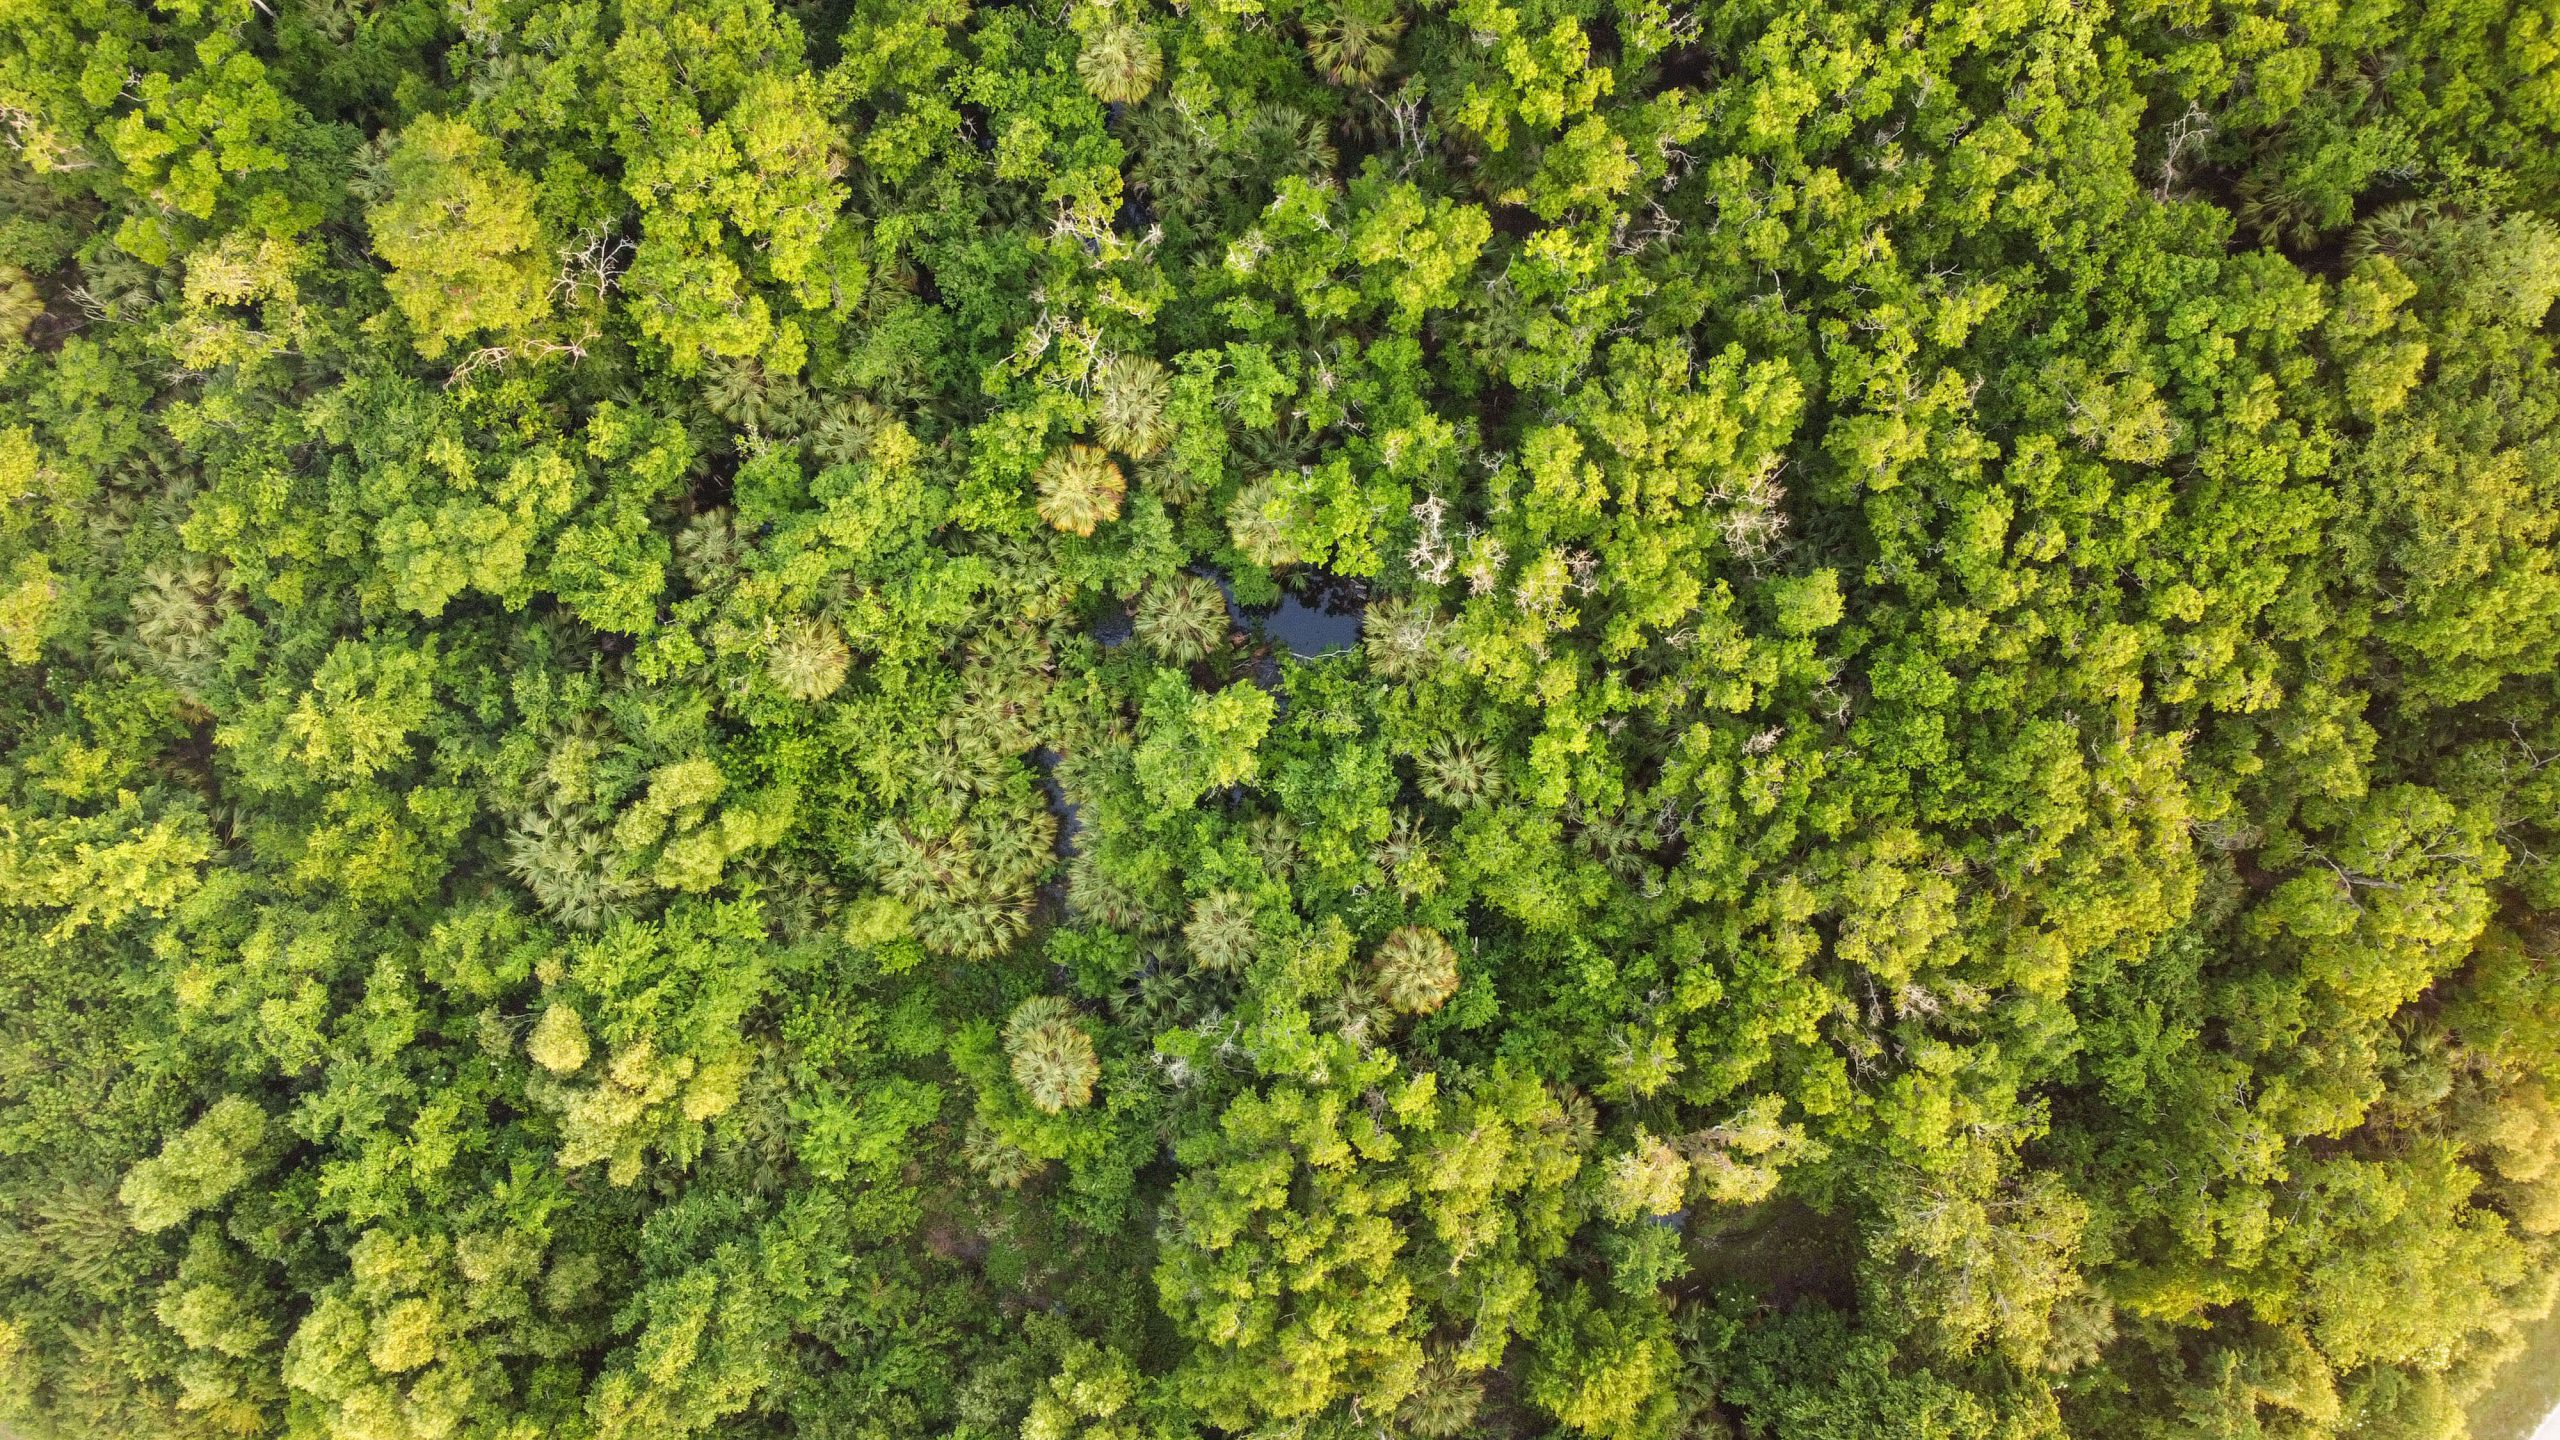 Aerial photo of forest from above, straight down